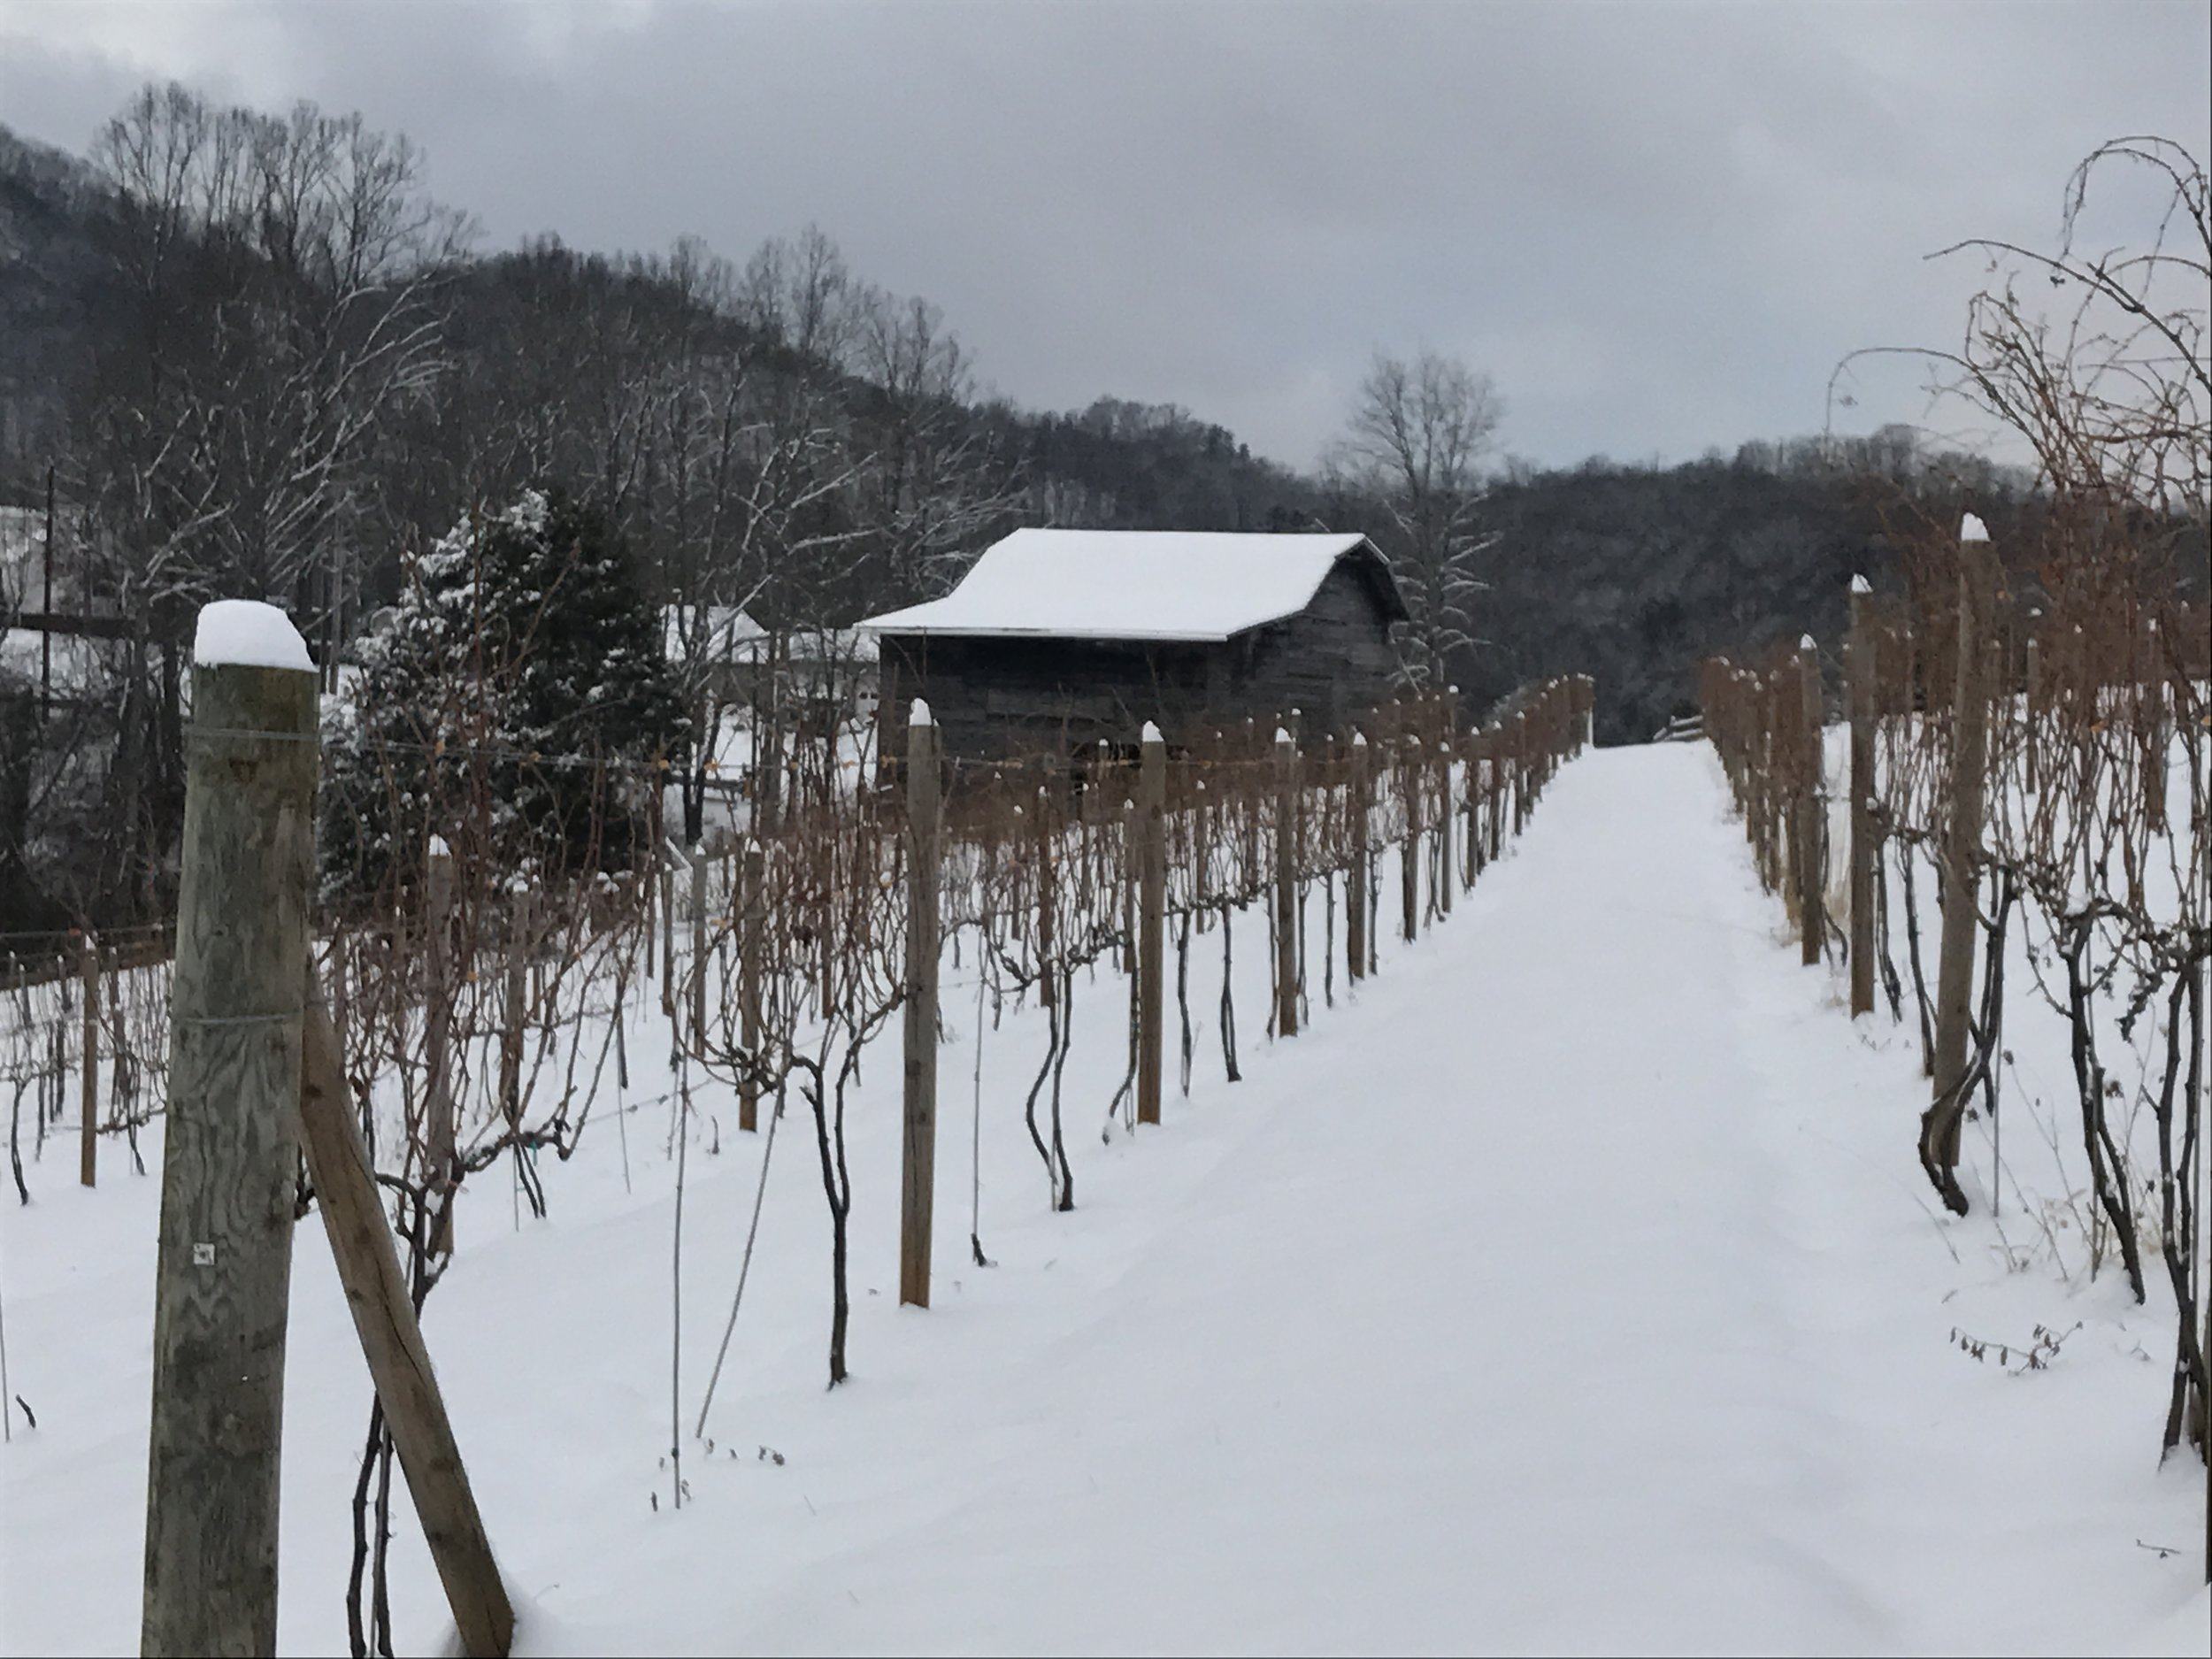 Snow in the vines, 7 Jan 2017